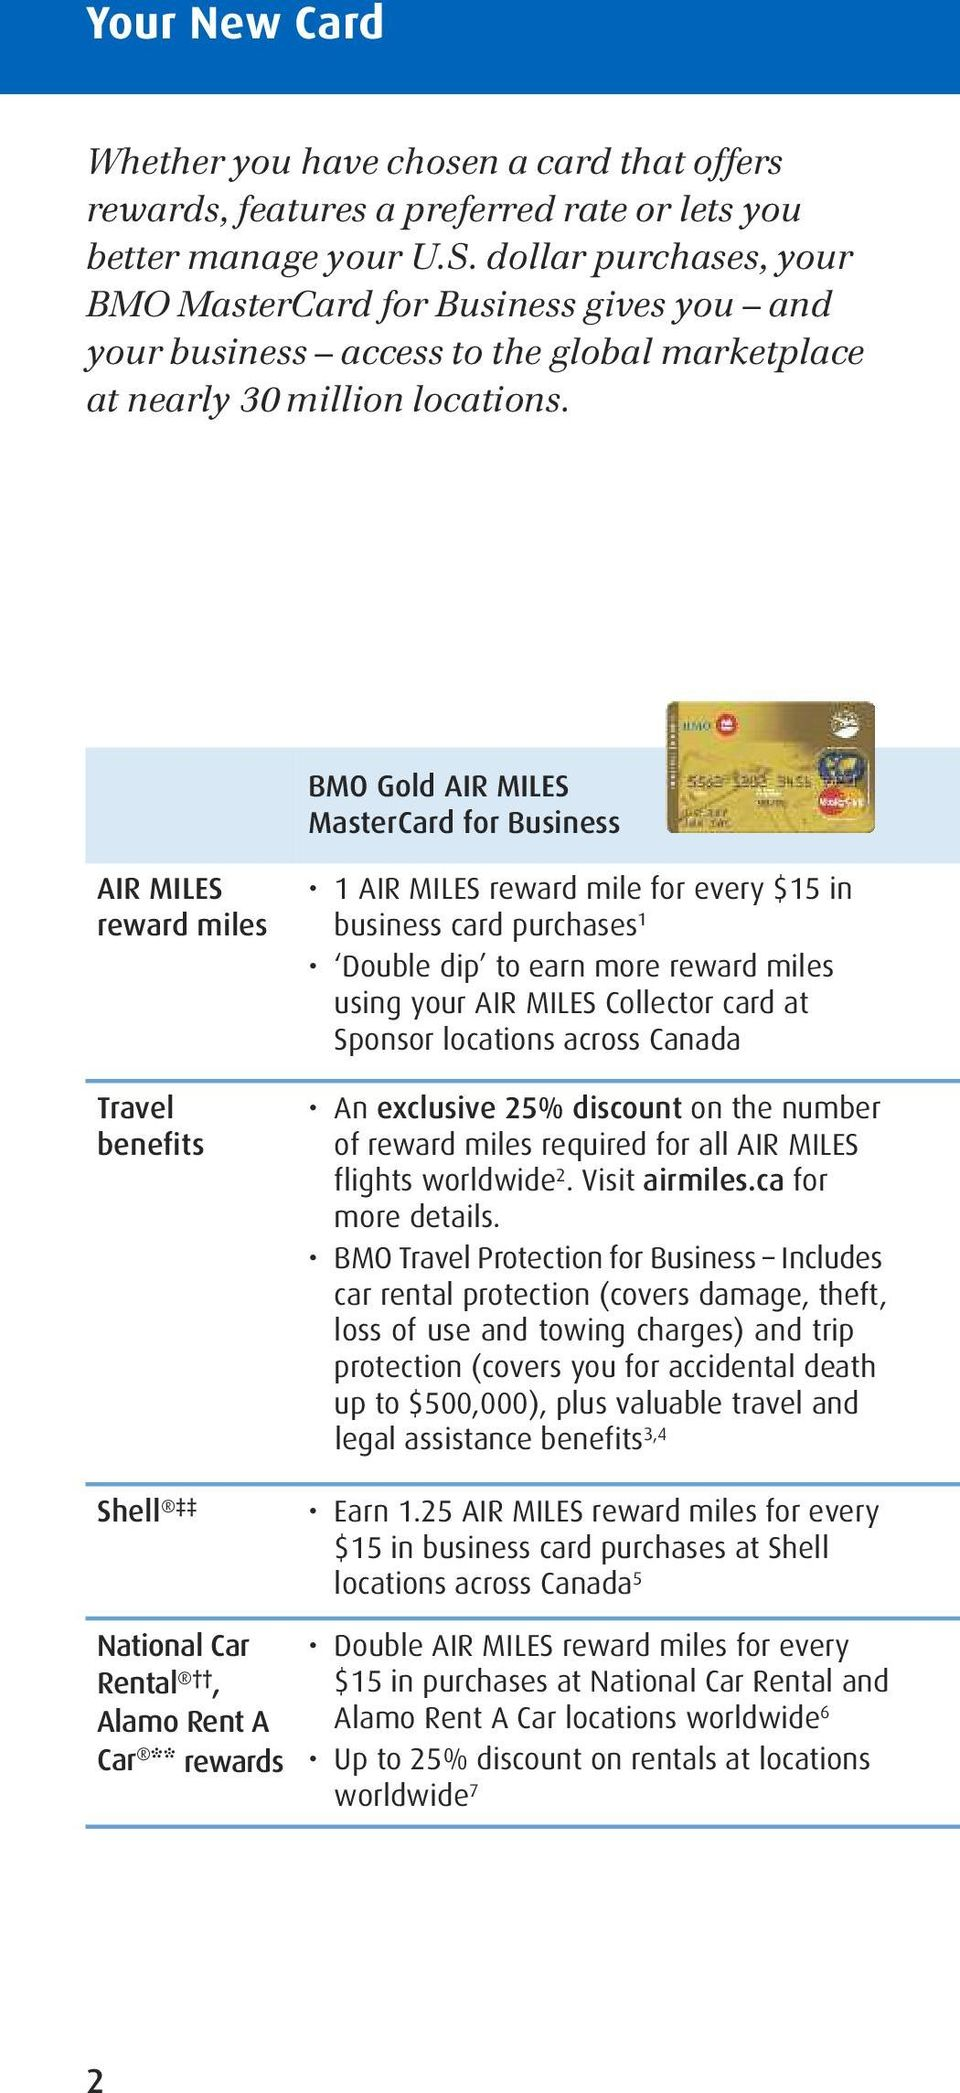 BMO Gold AIR MILES MasterCard for Business AIR MILES reward miles Travel benefits Shell 1 AIR MILES reward mile for every $15 in business card purchases 1 Double dip to earn more reward miles using